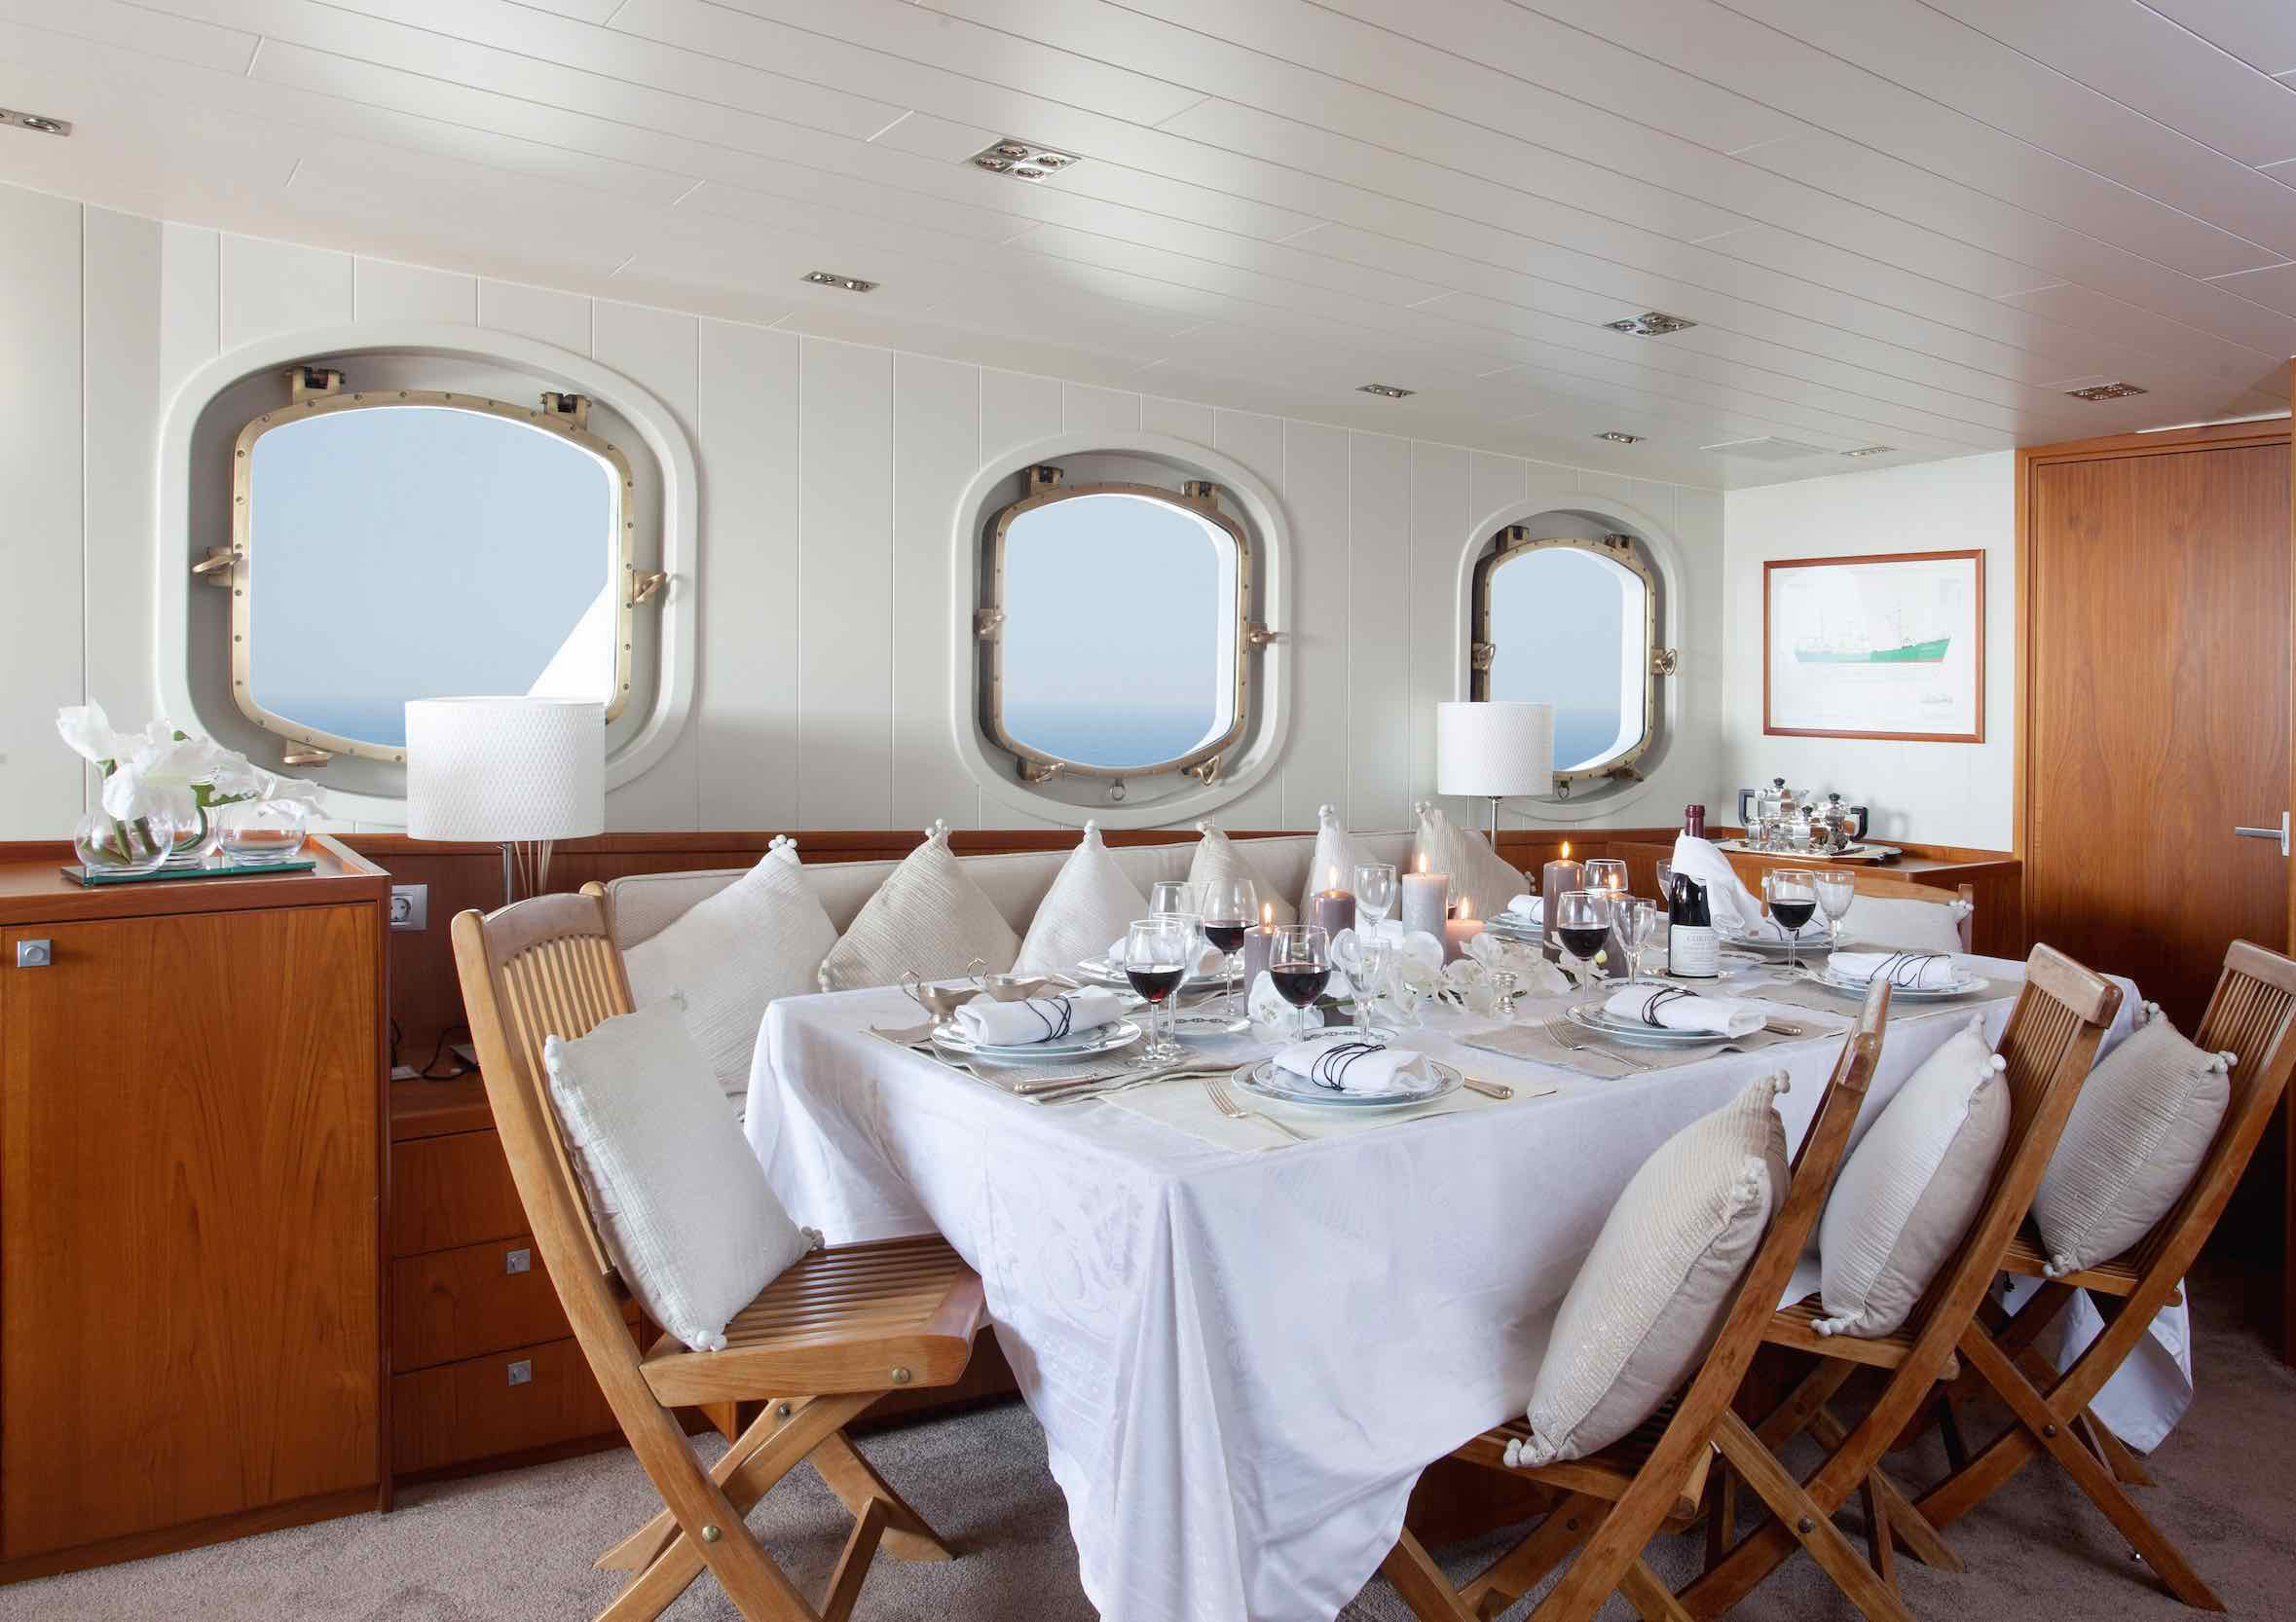 Motor yacht Drenec dining table copy.jpeg